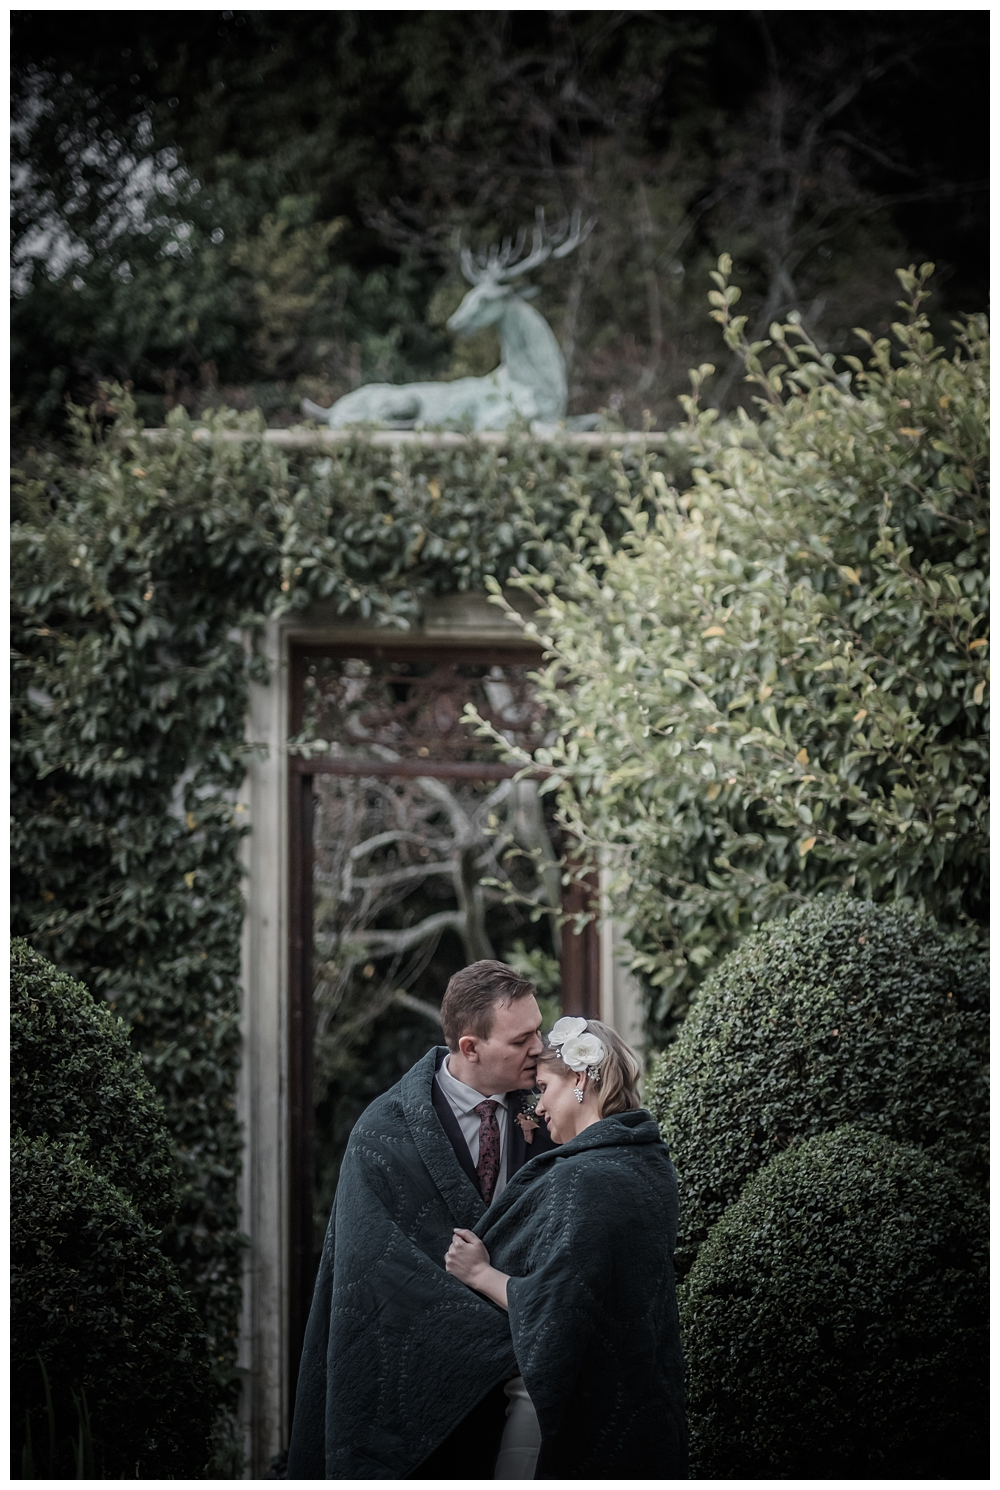 Best_Wedding_Photographer_AlexanderSmith_2323.jpg